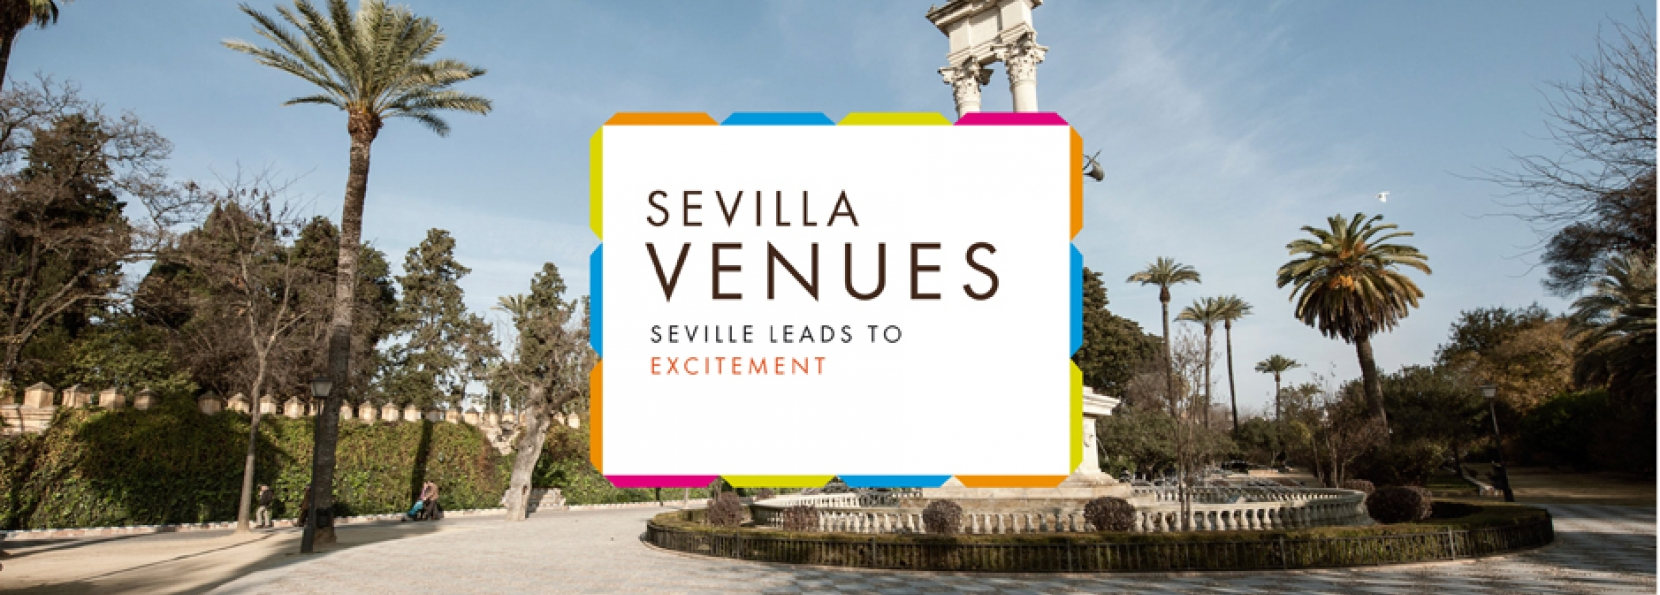 Seville leads to excitement